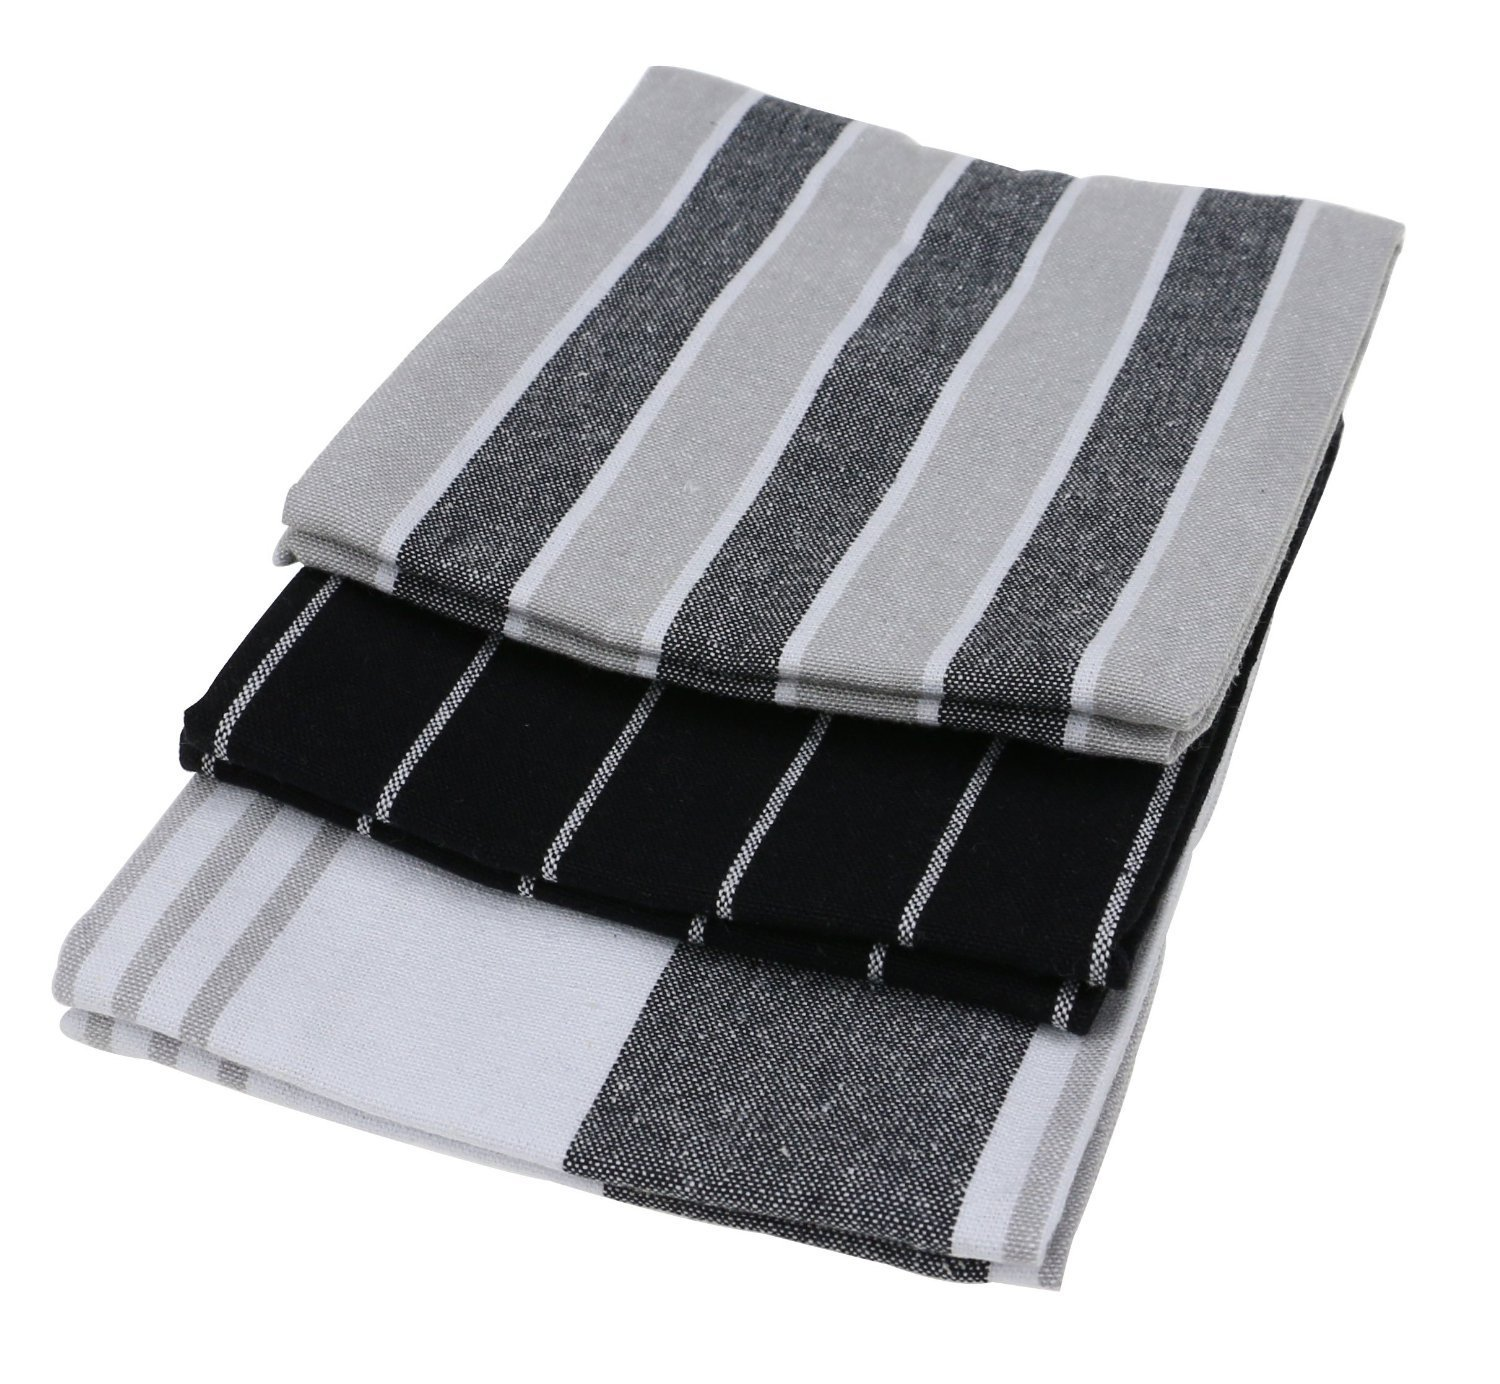 Generic 6pcs Kitchen Towels, 100% Natural Cotton, The Best Tea Towels, Dish Cloth, Absorbent And Lint-Free